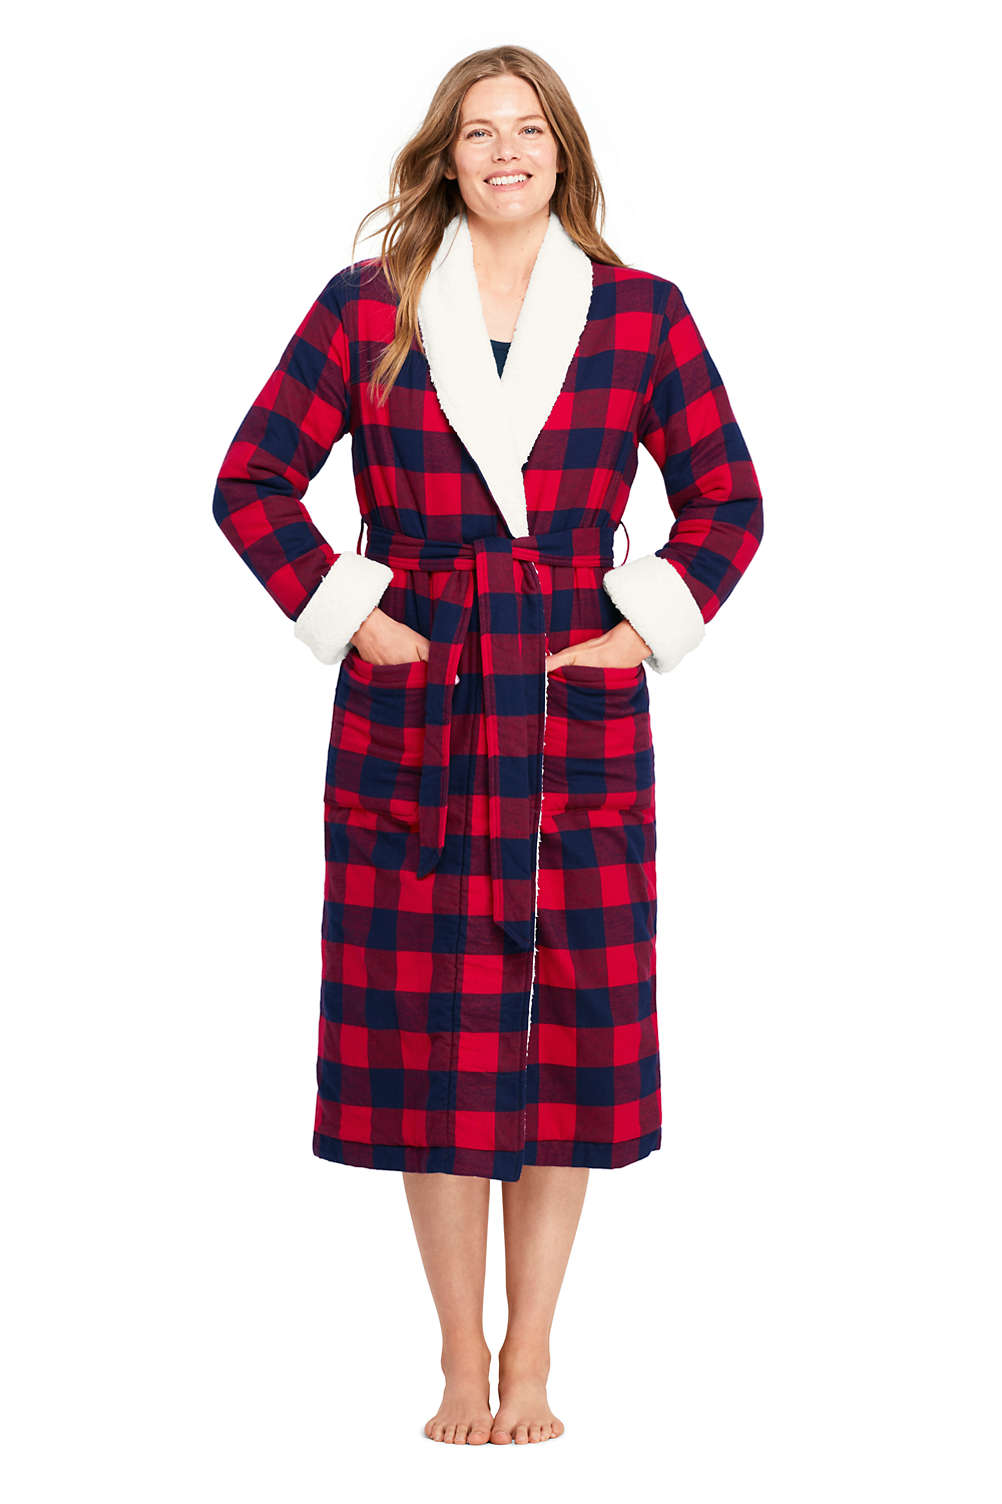 b9d91ceab1 Women s Flannel Sherpa Lined Long Robe from Lands  End